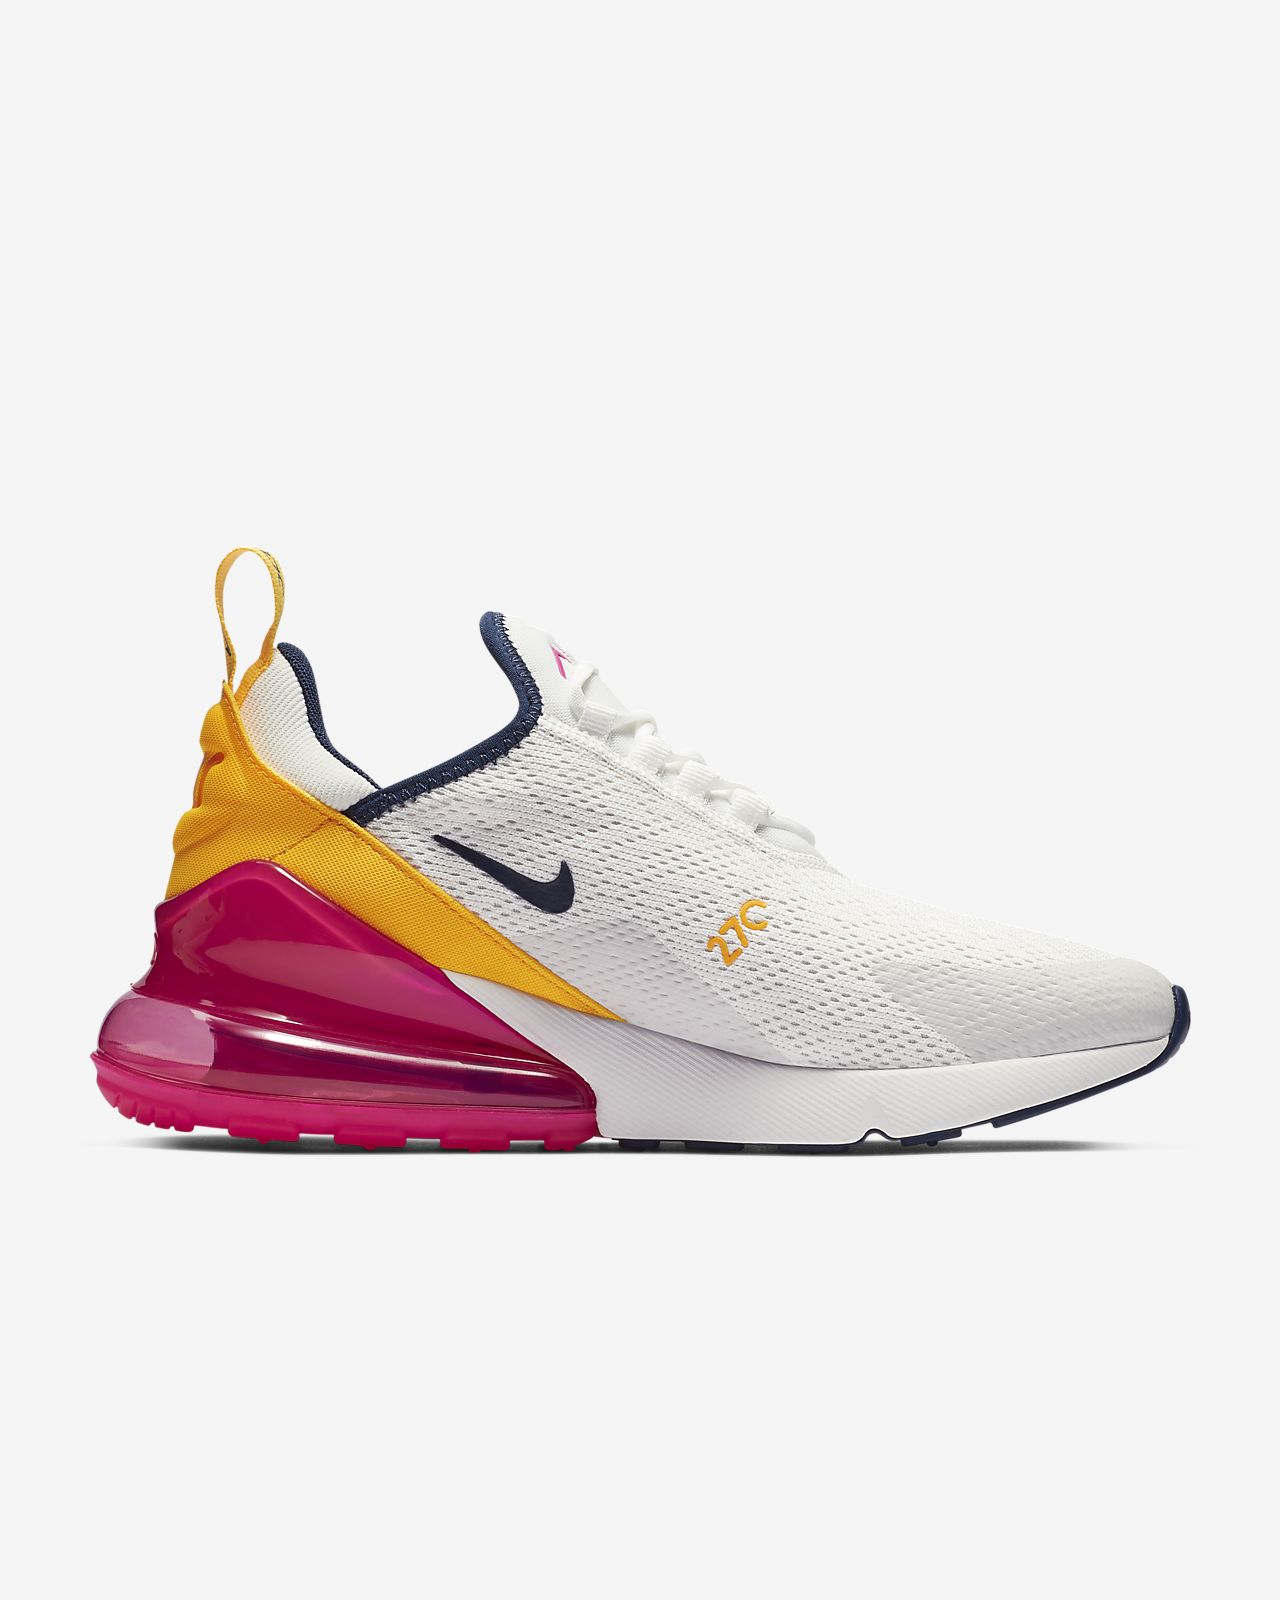 new products 49407 f0c09 ... Nike Air Max 270 Premium Women s Shoe